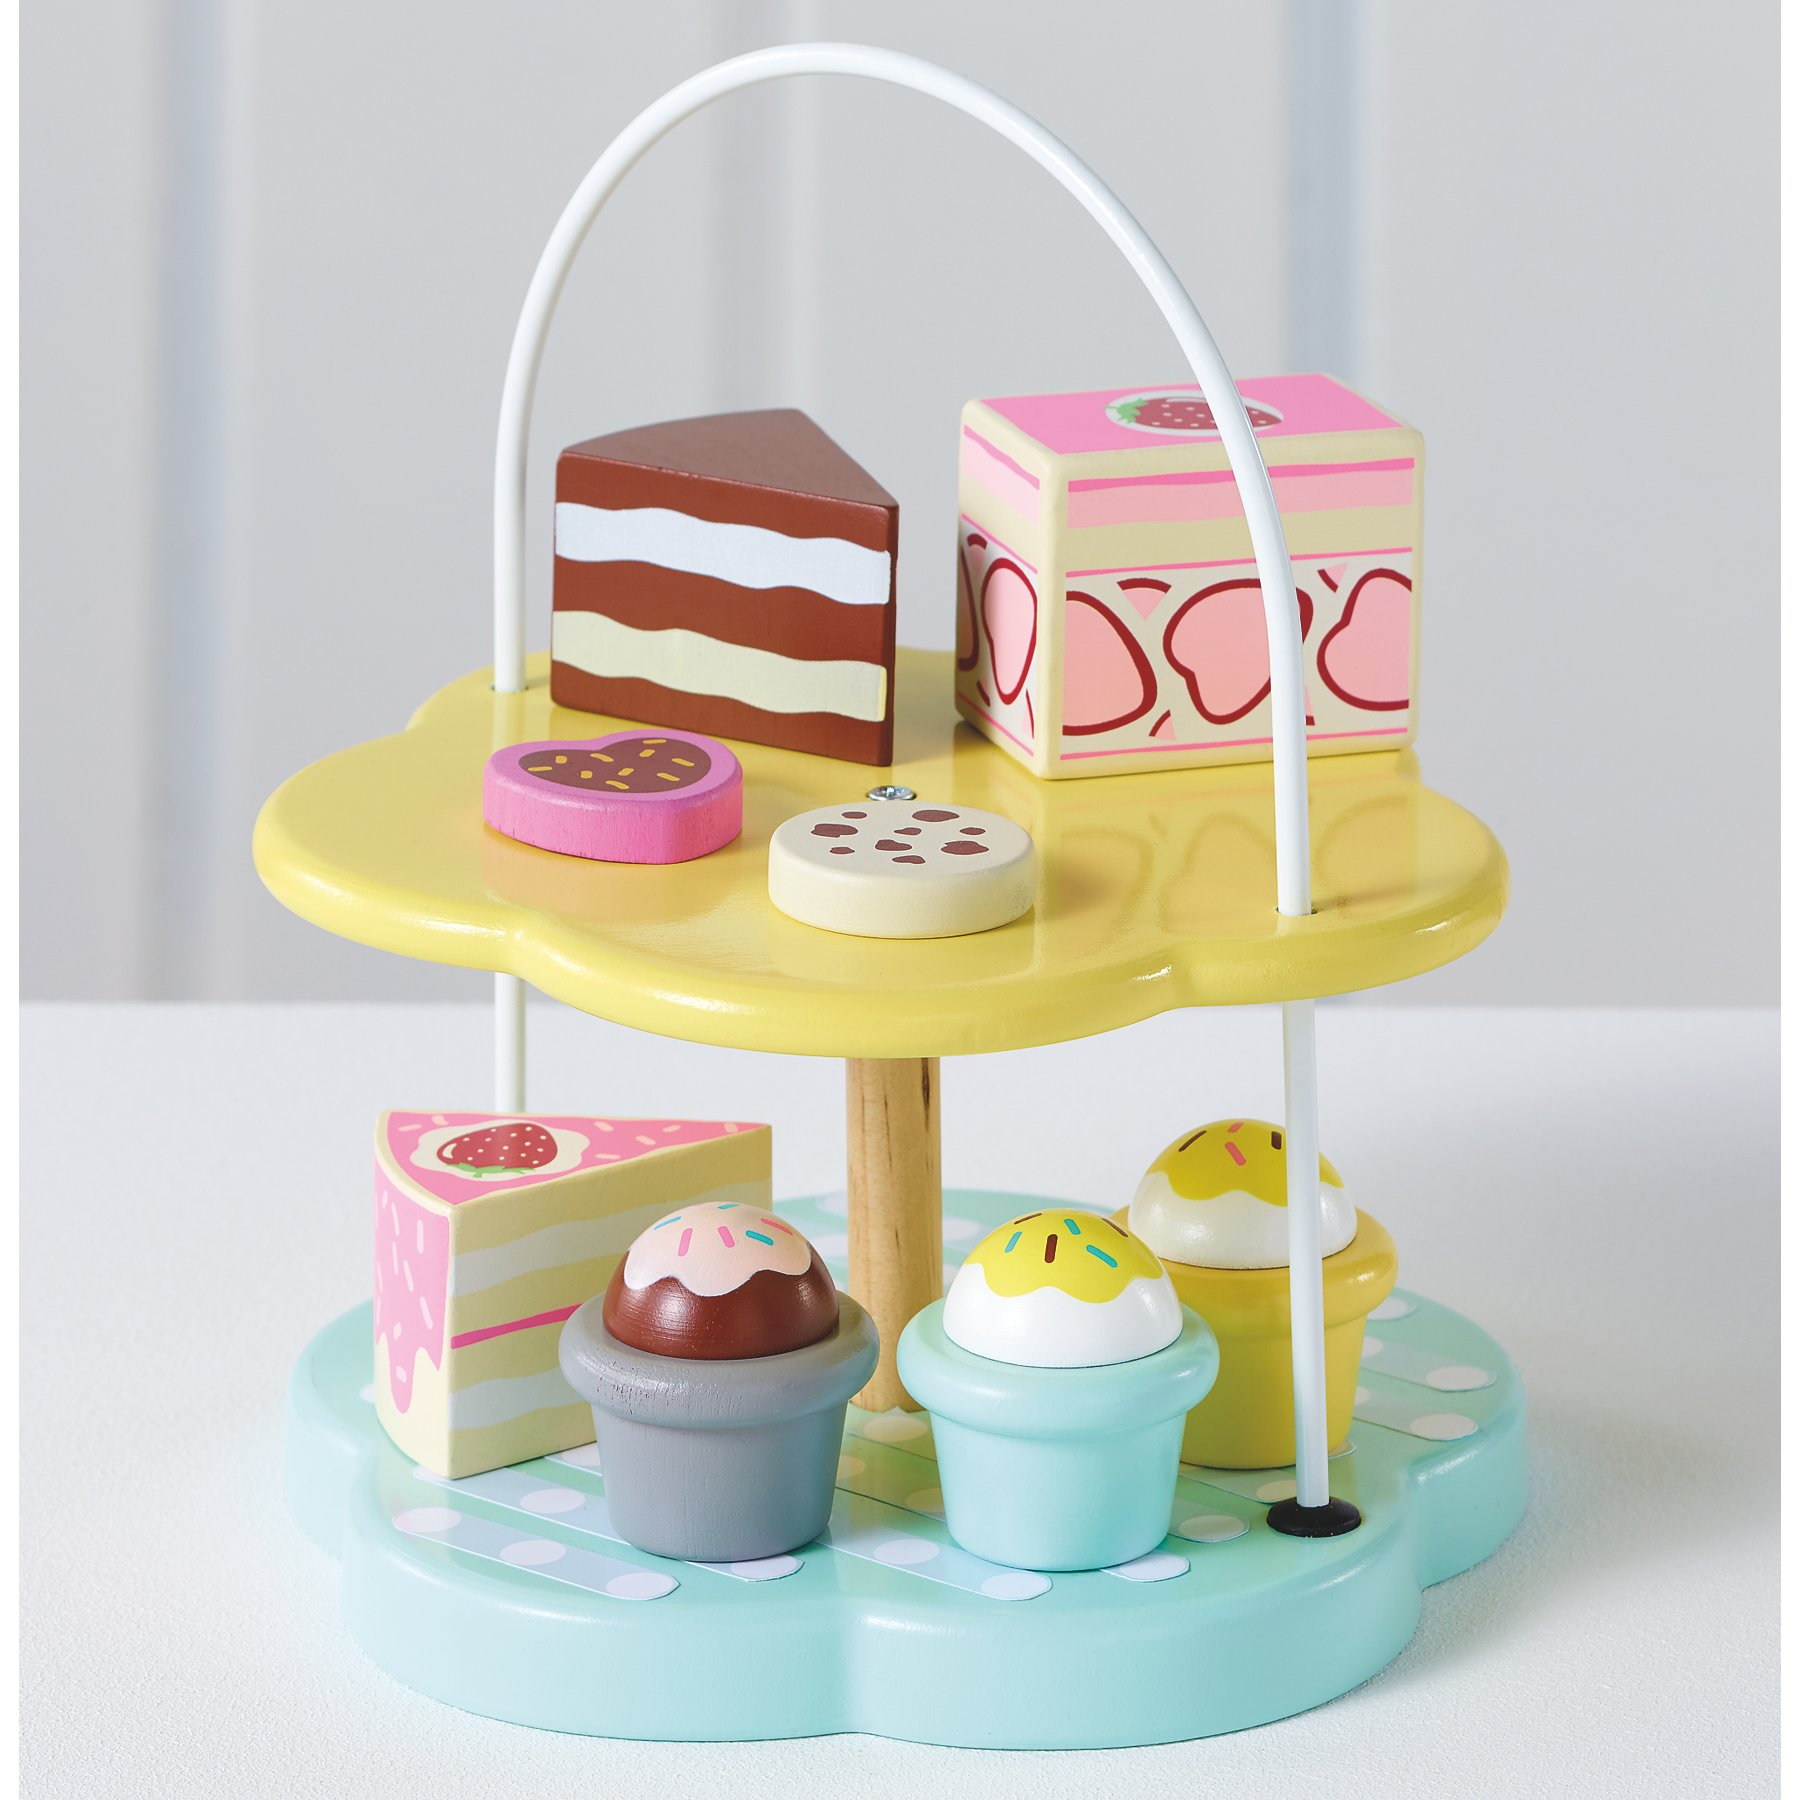 Wooden Play Cake Stand And Cakes